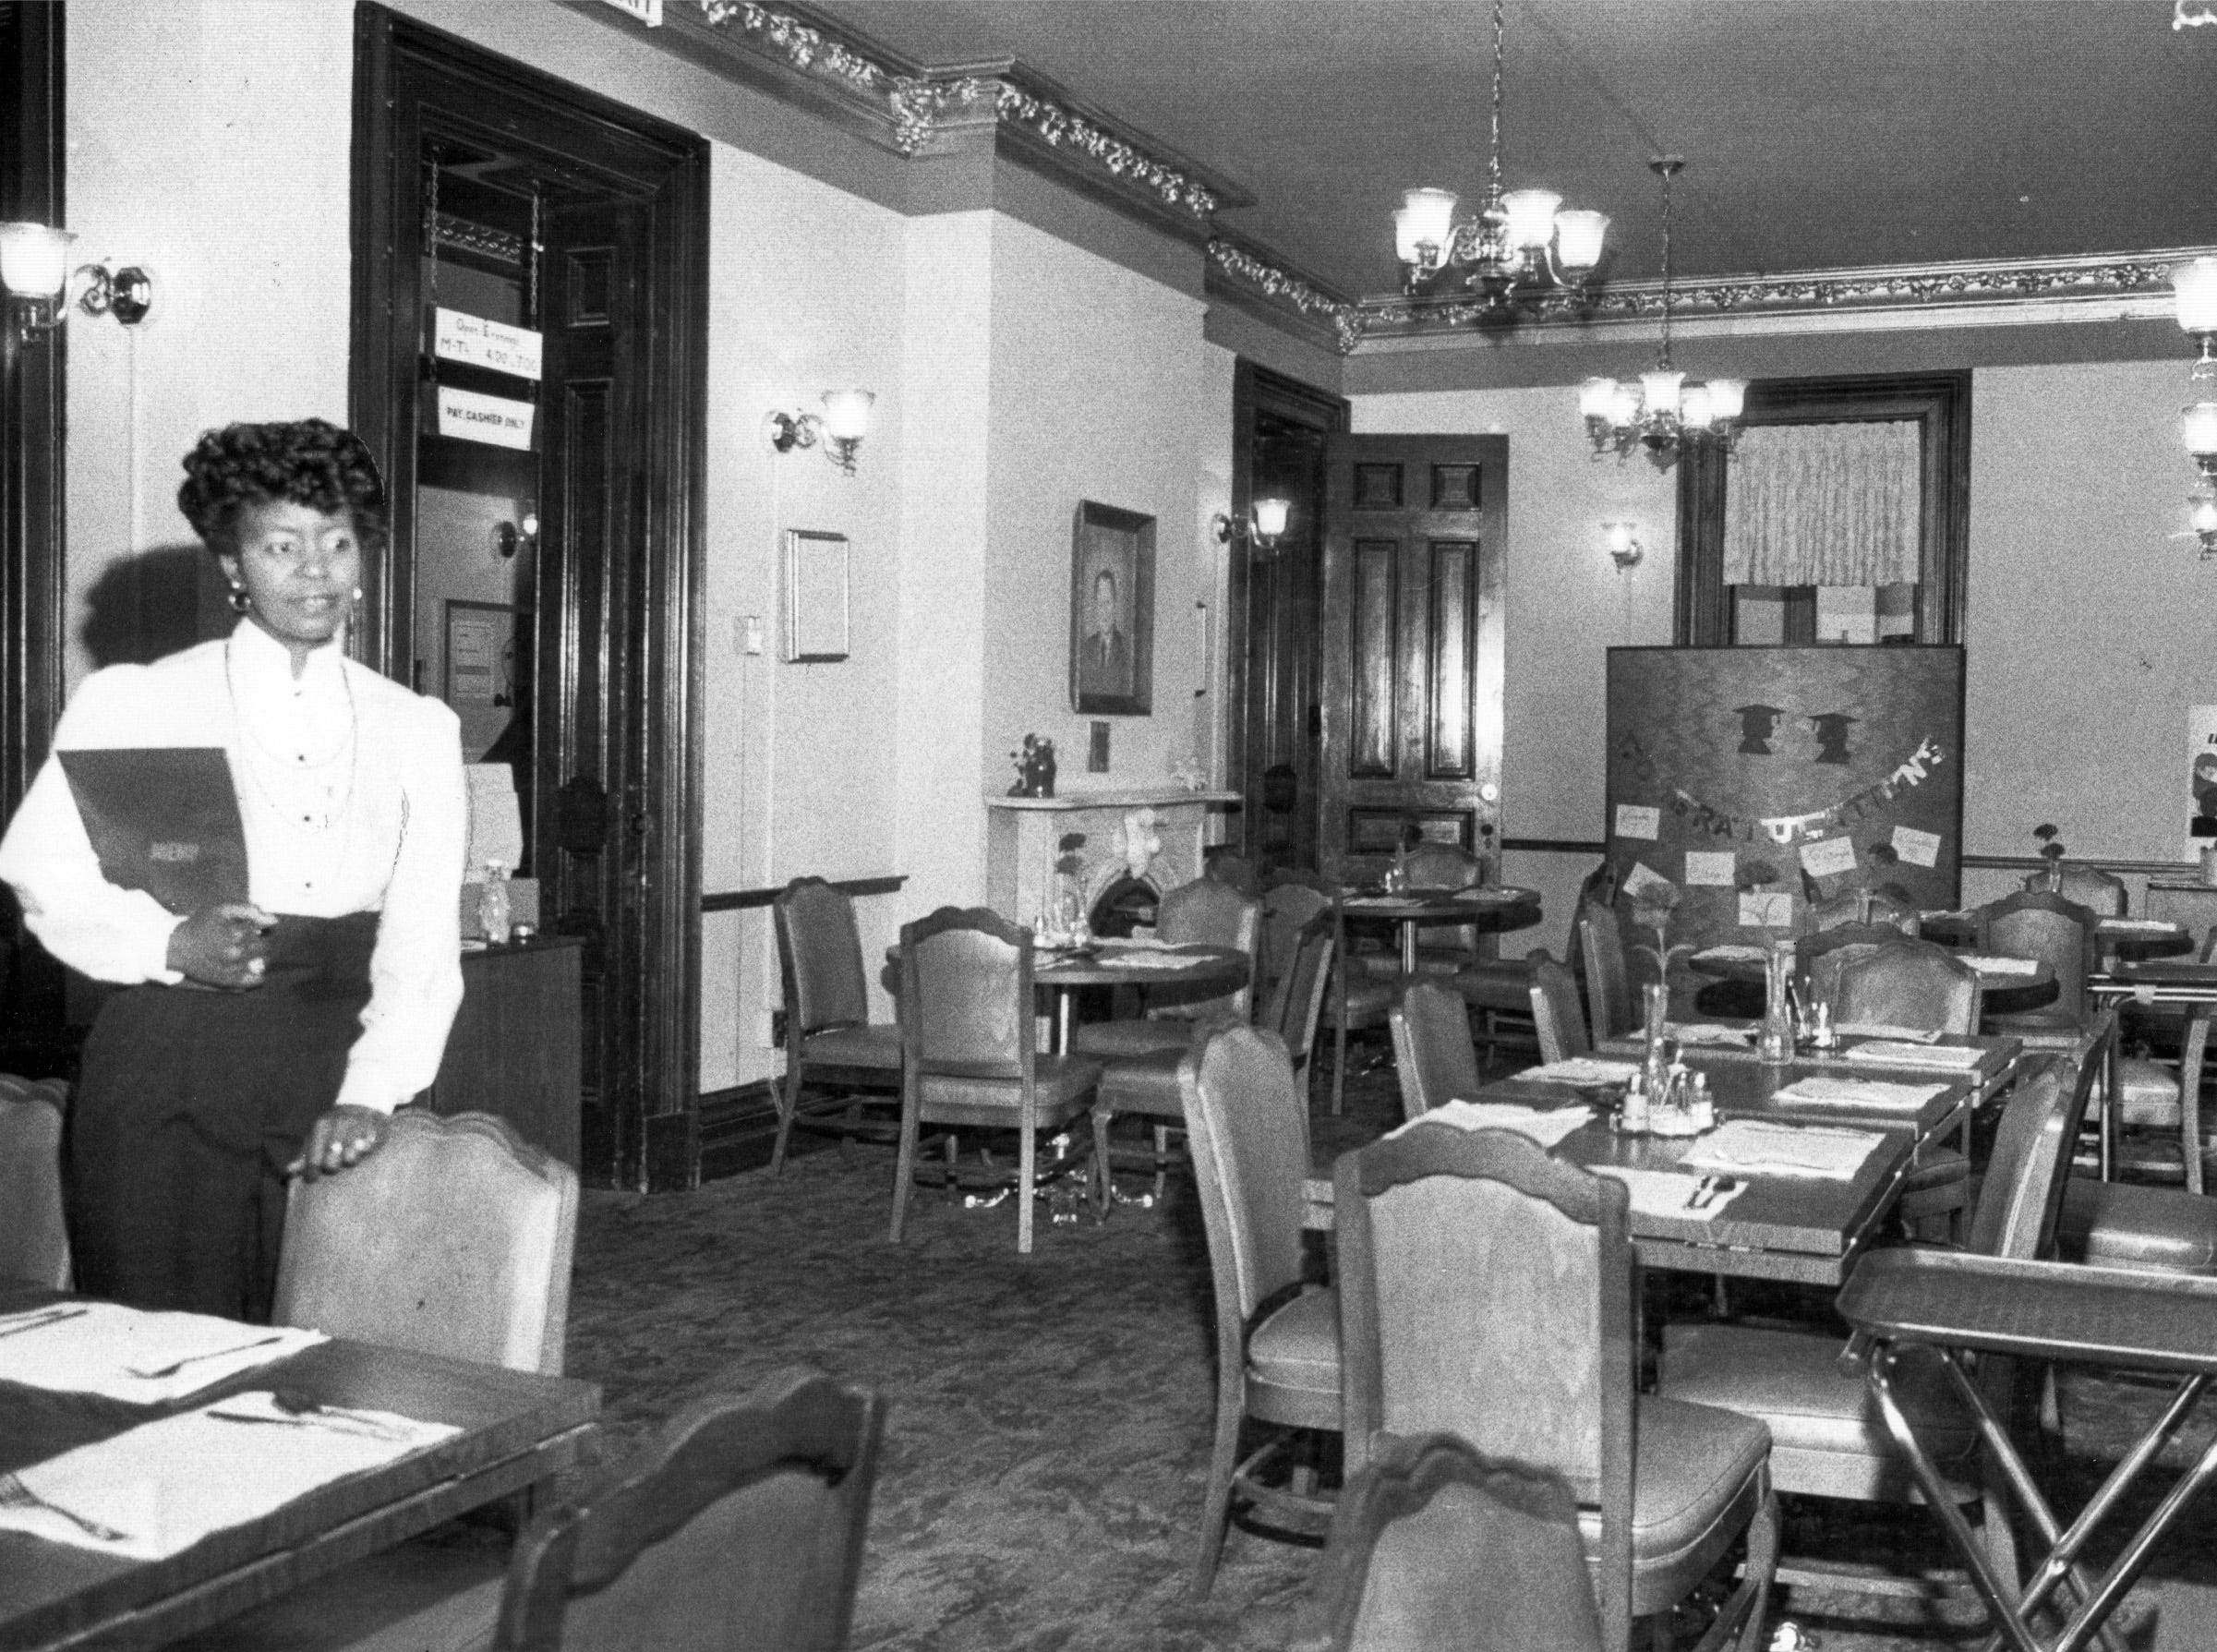 Dorris Raines checks over the Victorian dinning room known as Colonel's Cupboard, a model restaurant on the grounds of Arsenal Technical High School in 1983.